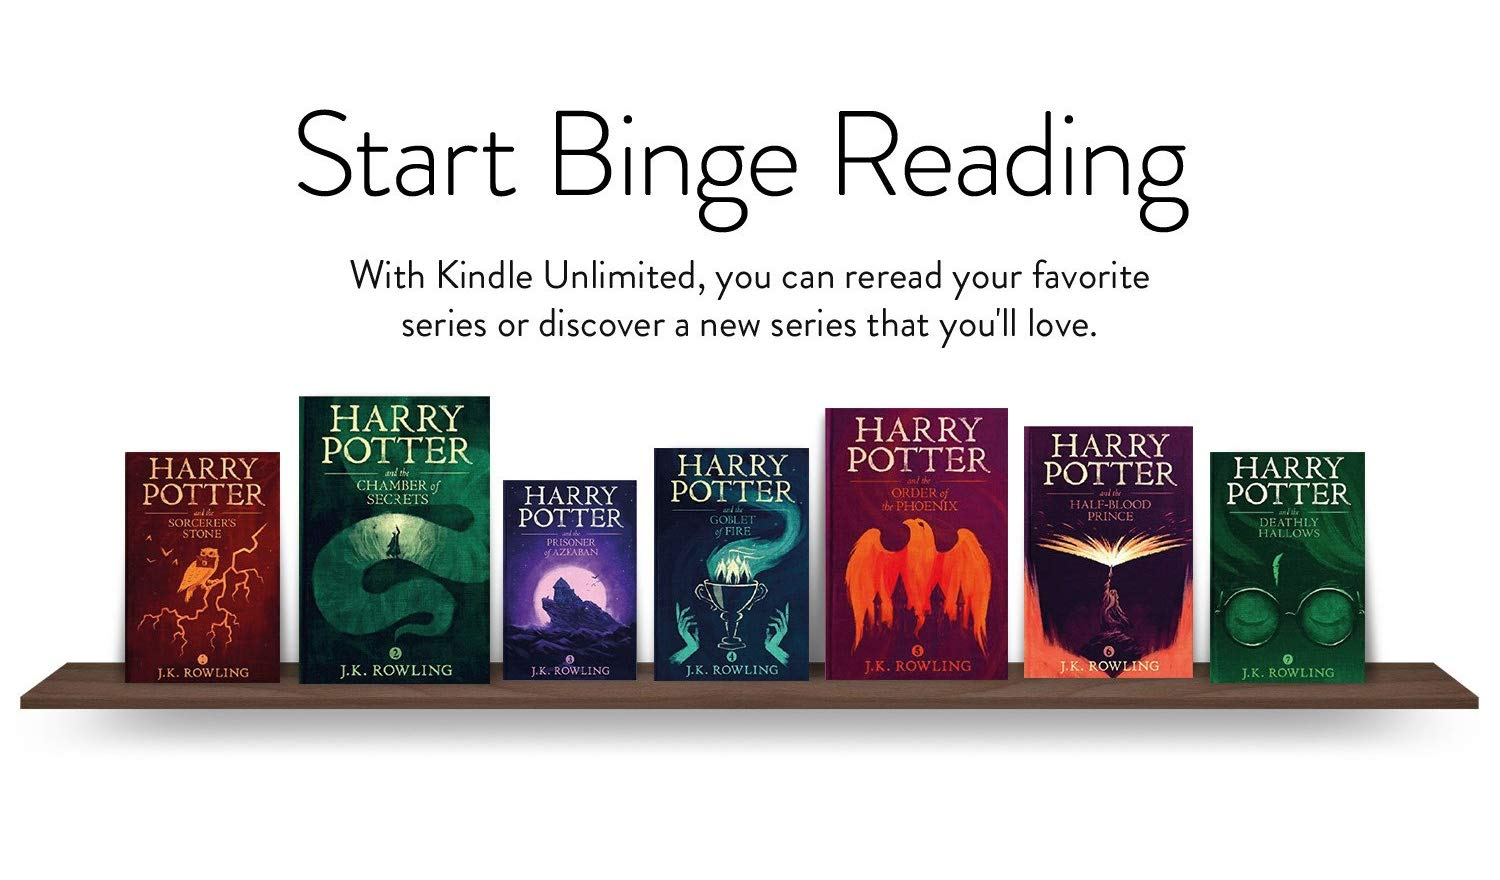 Harry Potter on Kindle Unlimited